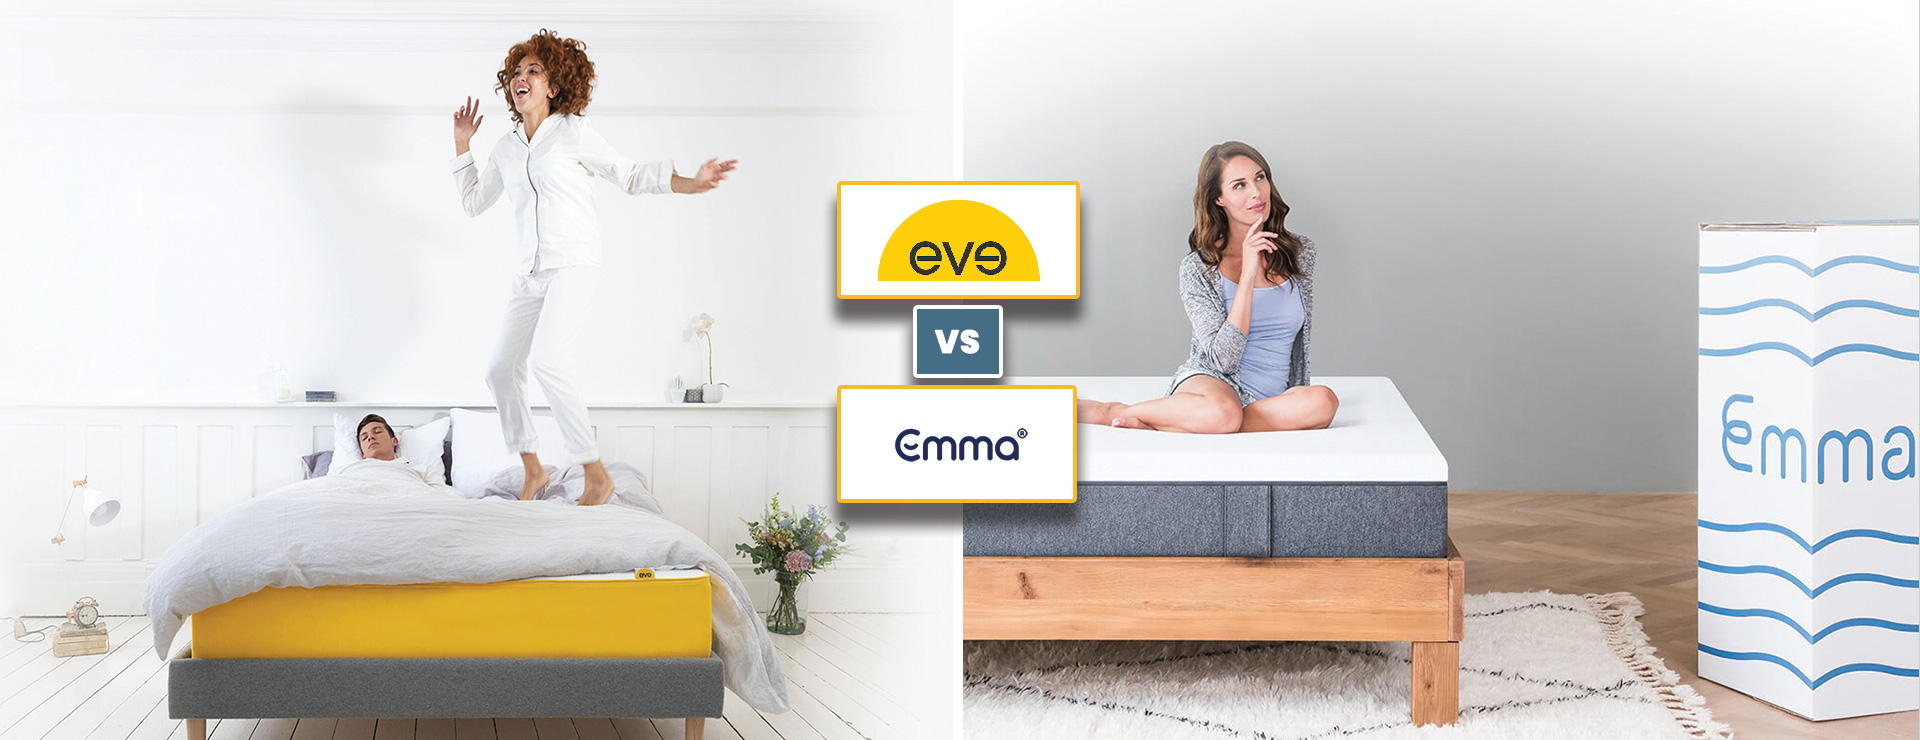 Eve-vs-emma-top-bottom-1920x740